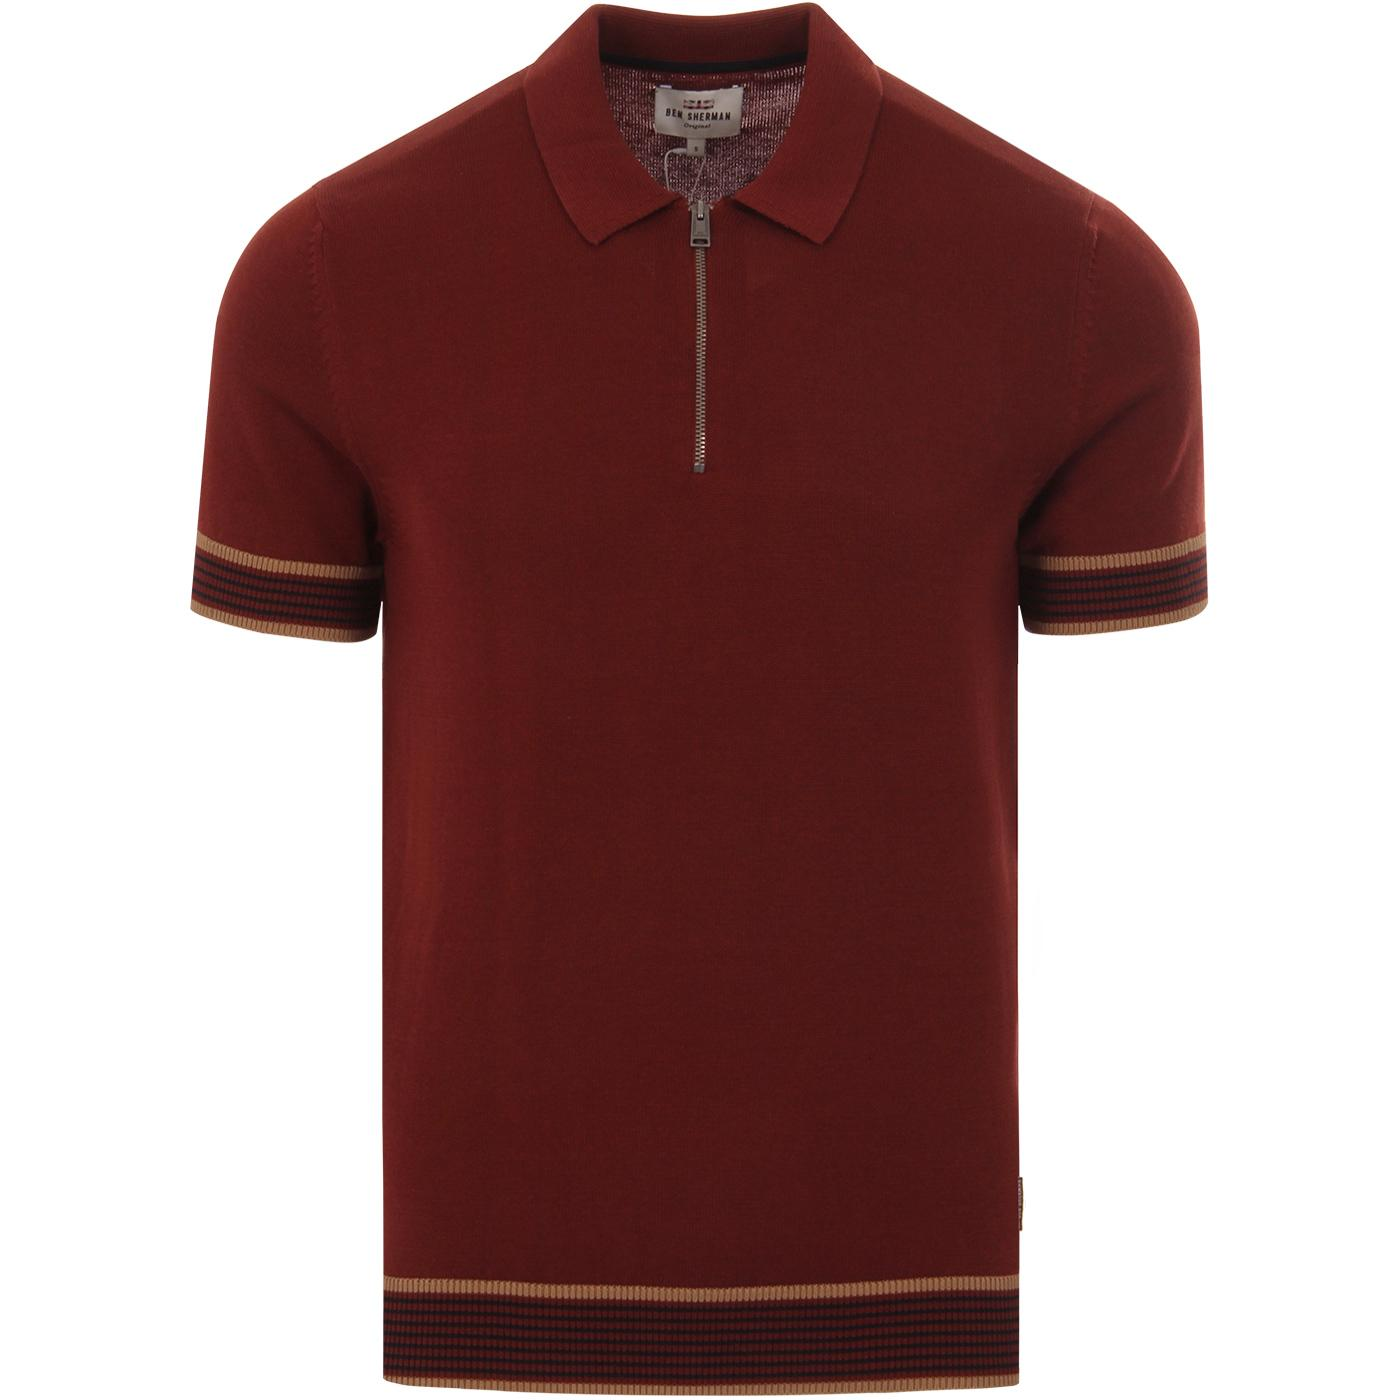 BEN SHERMAN 60s Mod Colour Block Knitted Polo C